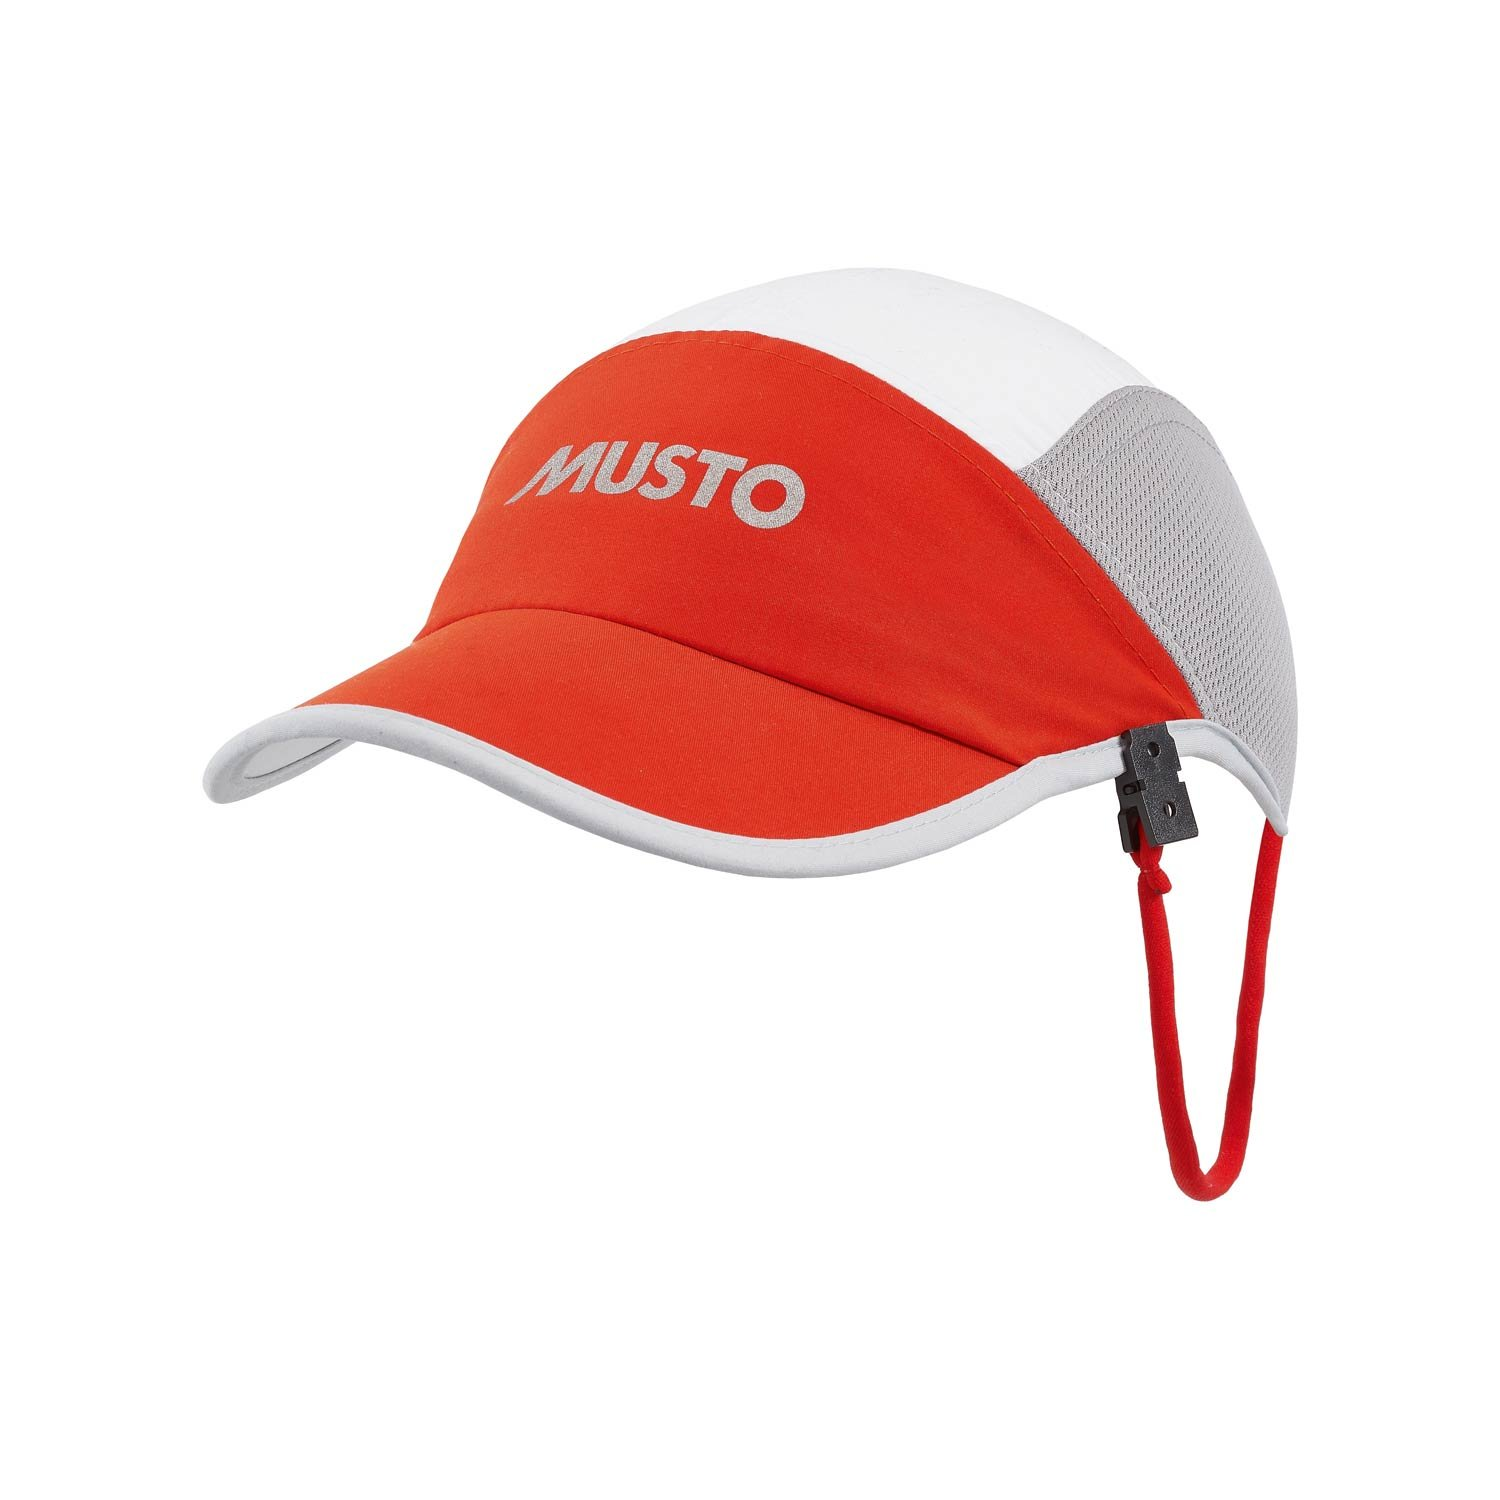 Musto Evolution Cap Fire Orange AE0101 Size-- - Large/XLarge